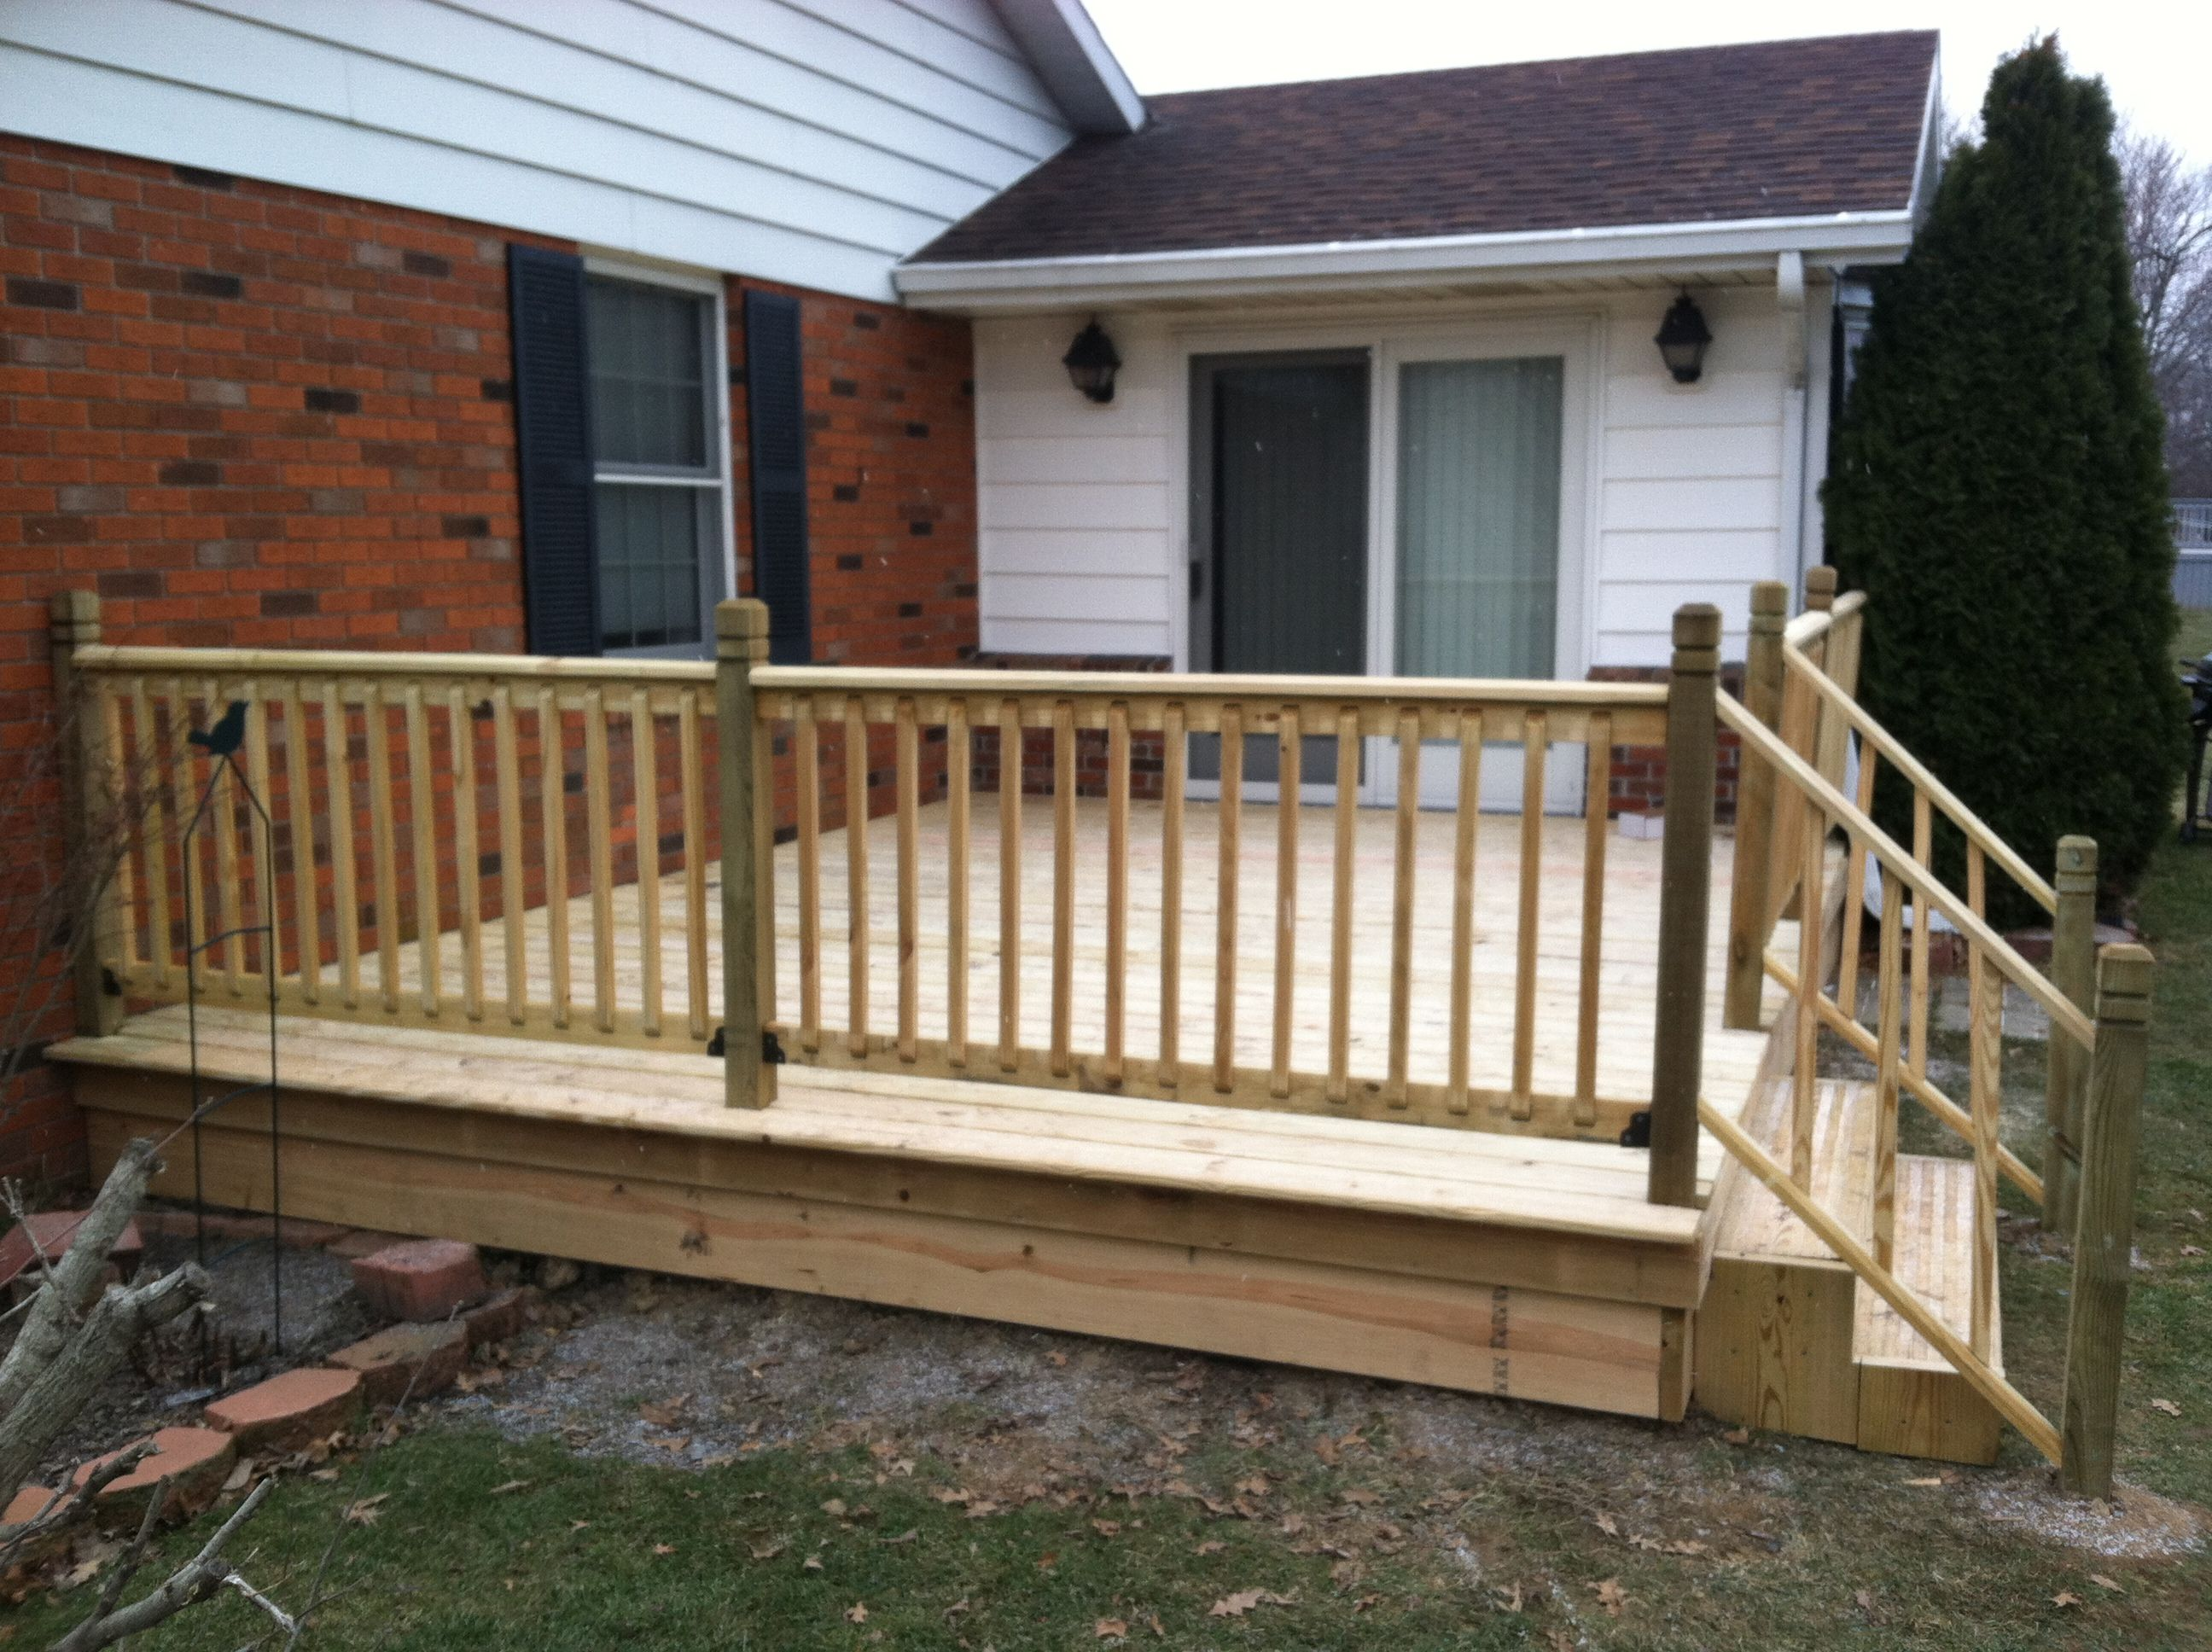 12x16 deck completed in 3 days contact for more for 12x16 deck plans